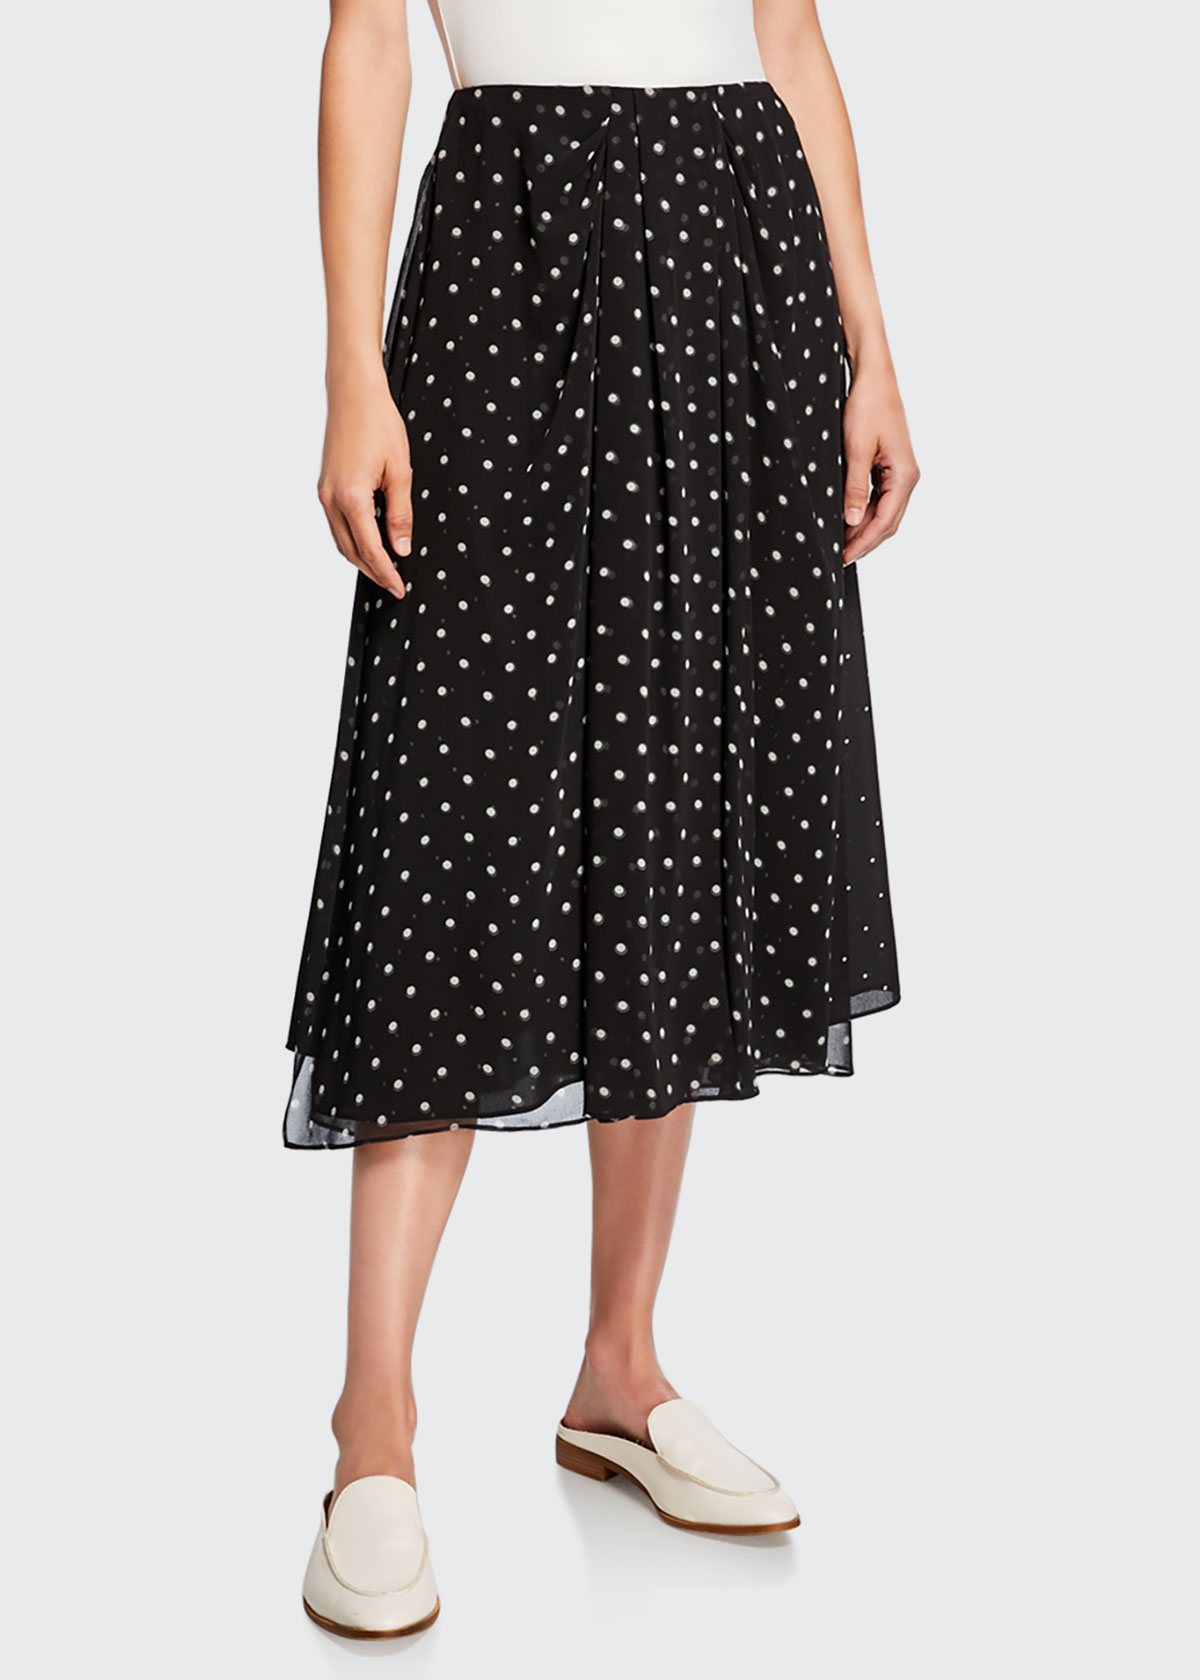 Vince Skirts MIXED MEDIA DOT-PRINT MIDI SKIRT